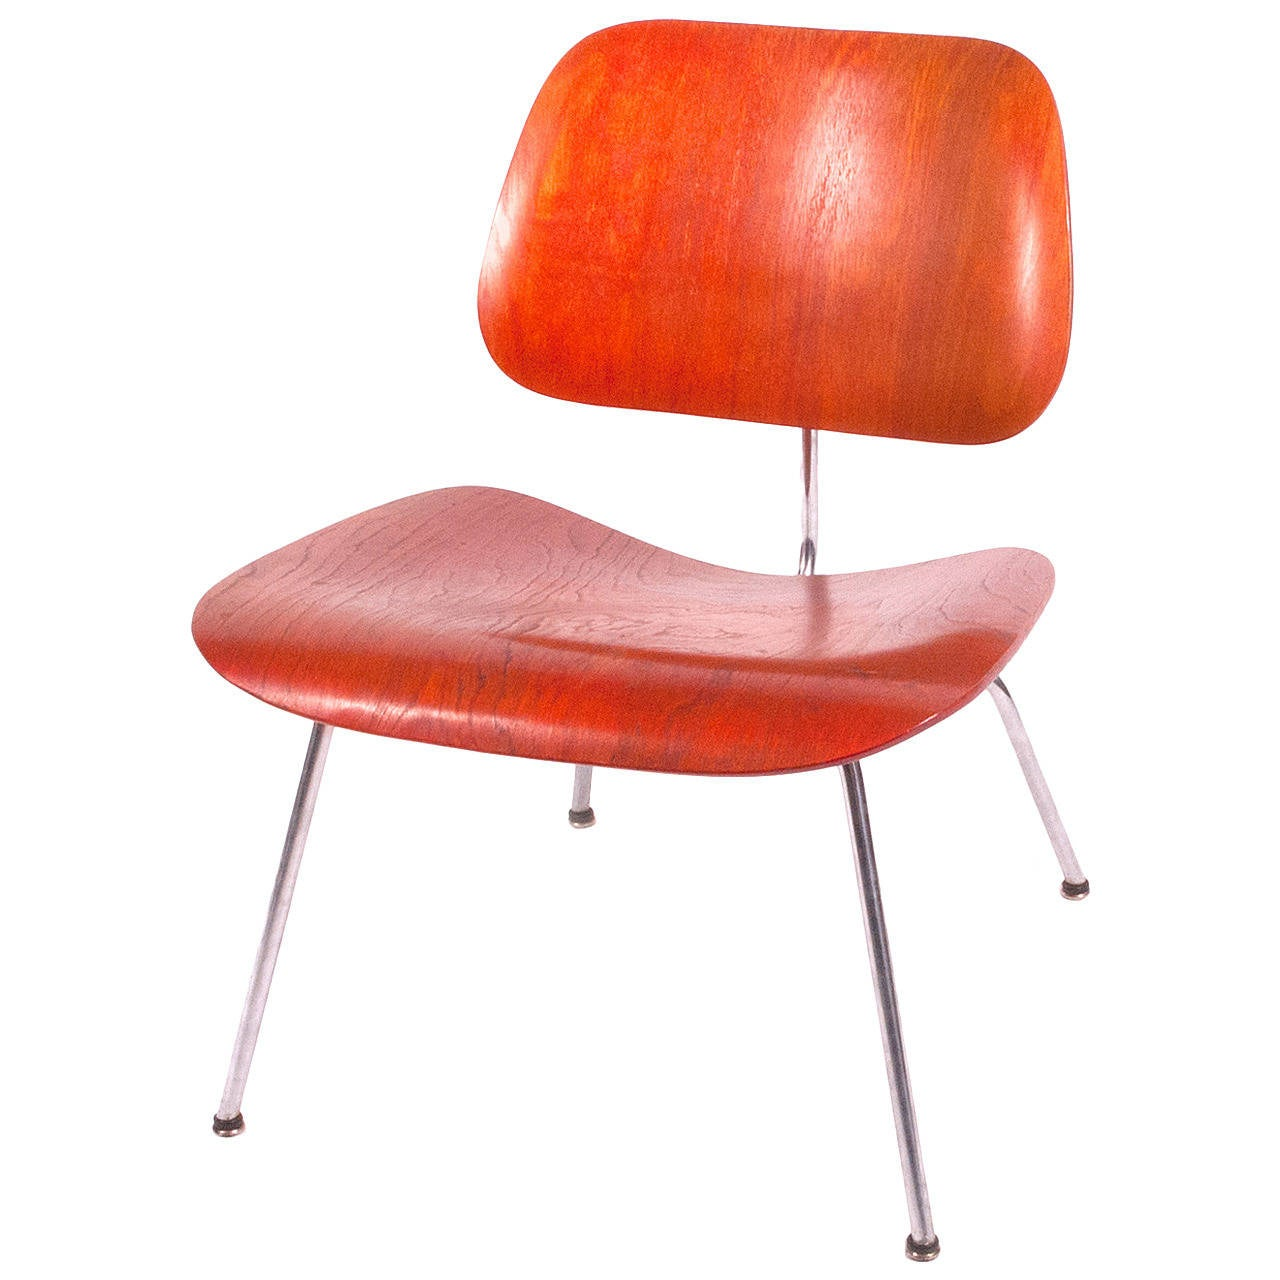 1951 original red aniline dyed lcm chair by charles eames. Black Bedroom Furniture Sets. Home Design Ideas